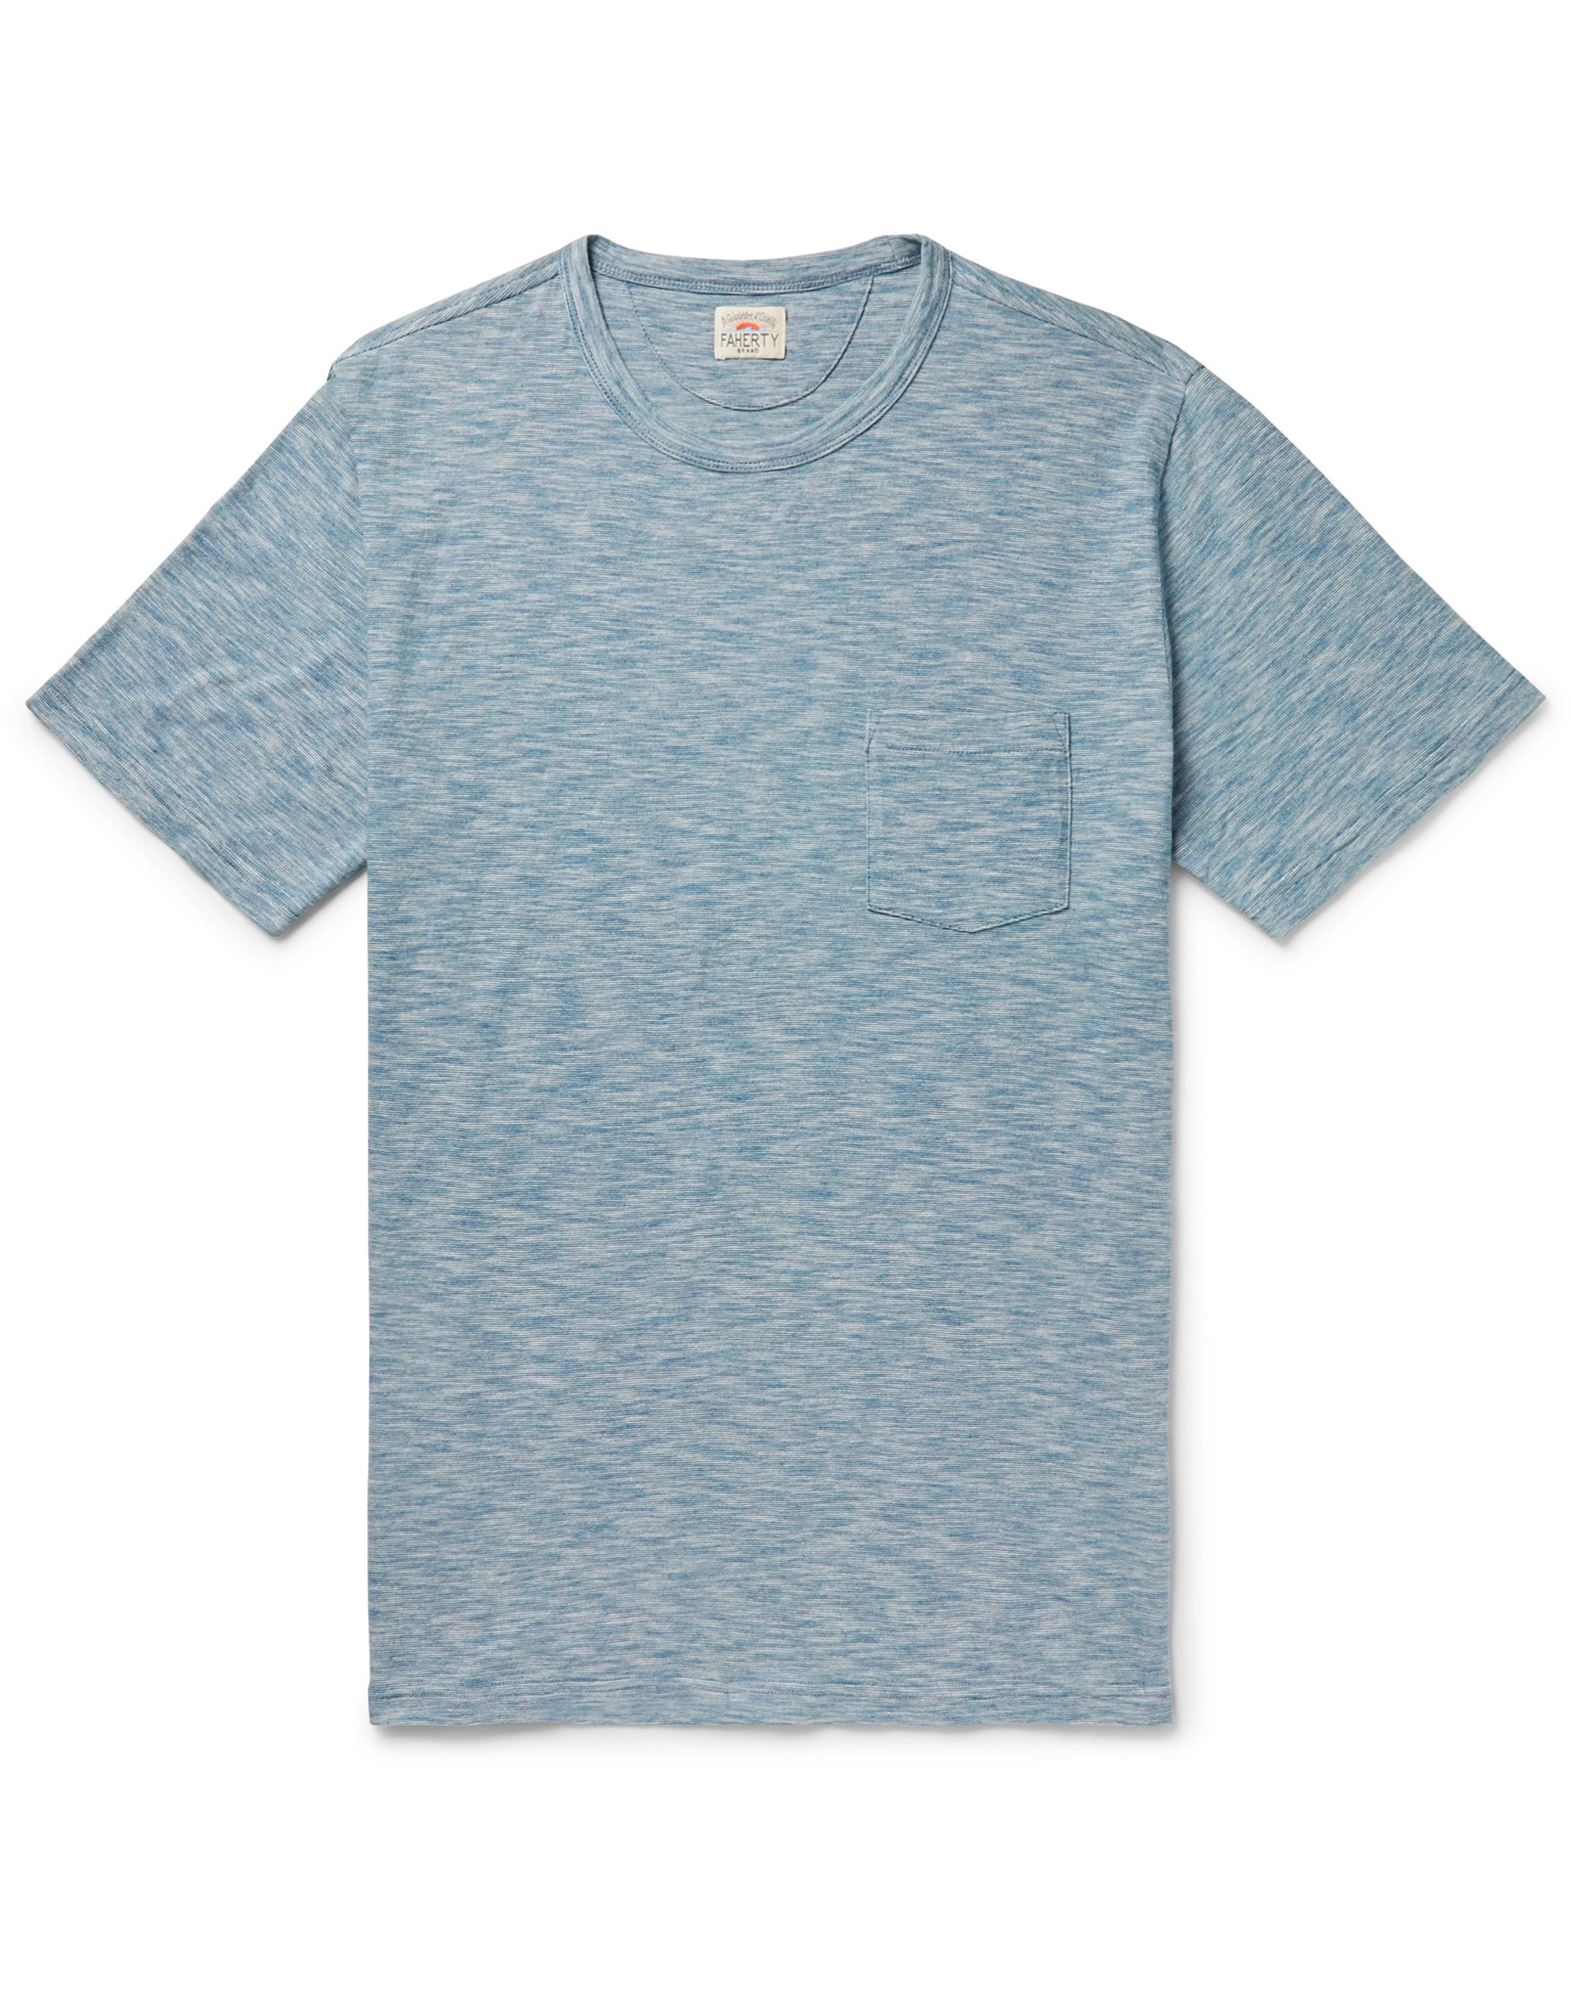 FAHERTY T-shirts. jersey, logo, two-tone, round collar, short sleeves, single pocket. 100% Cotton